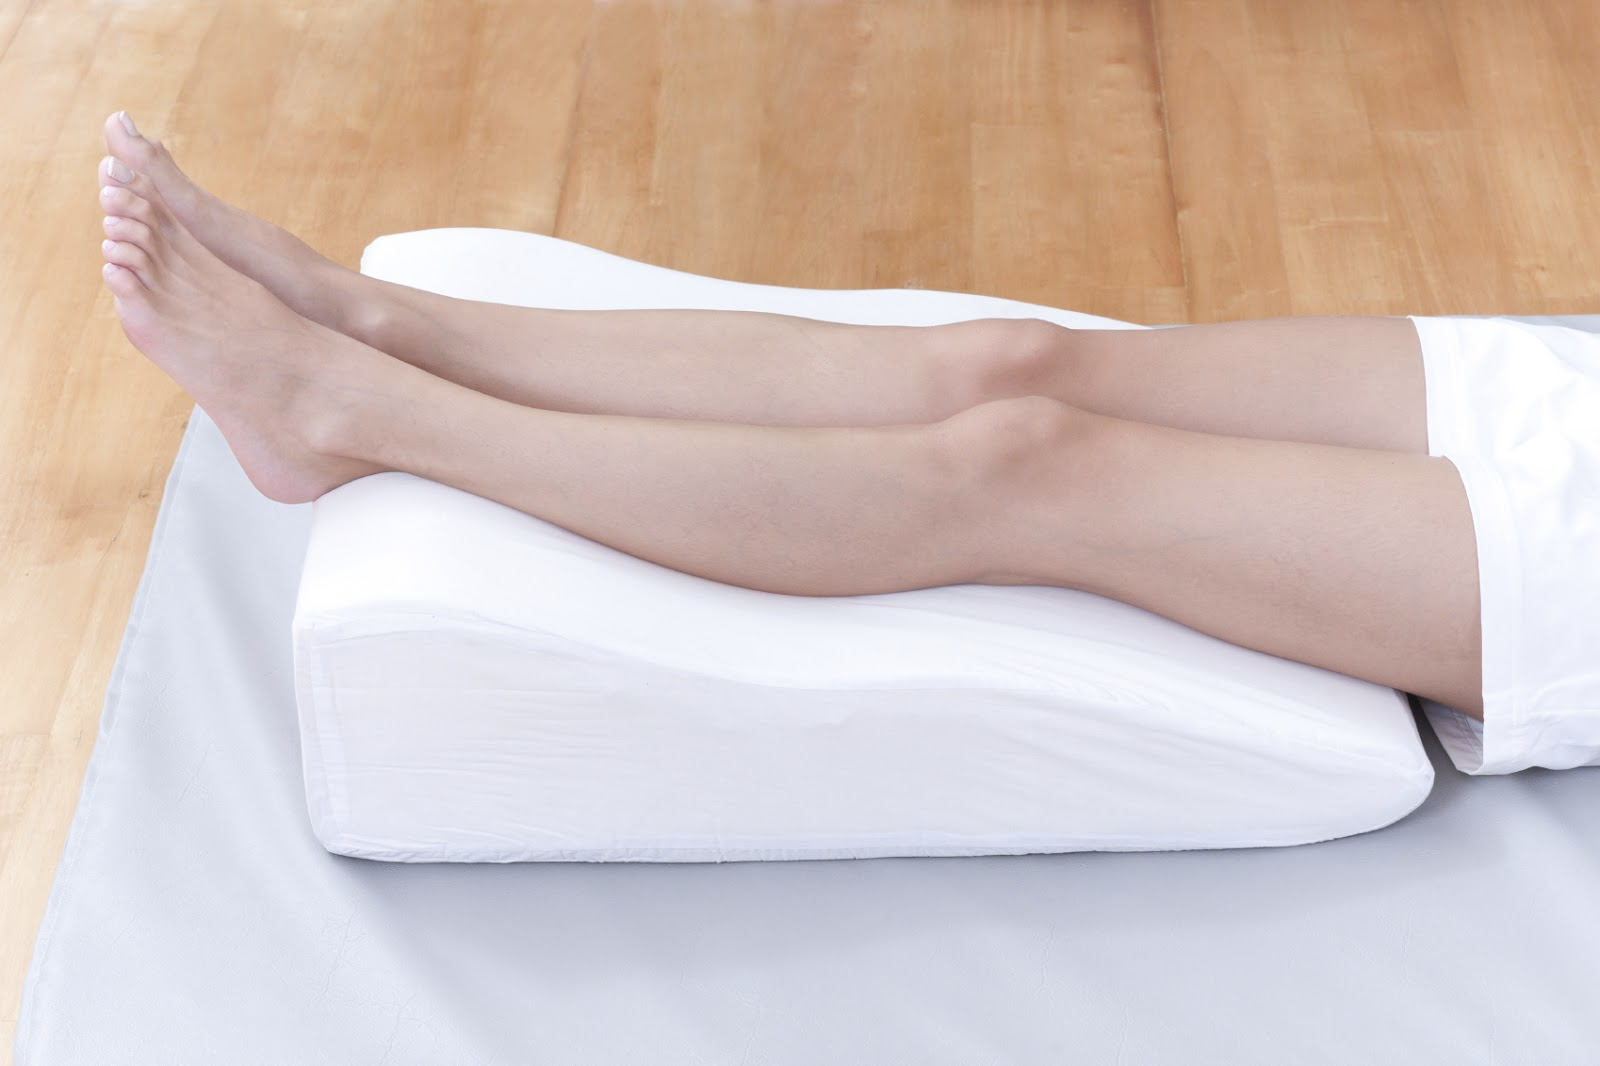 elevating legs - varicose treatment